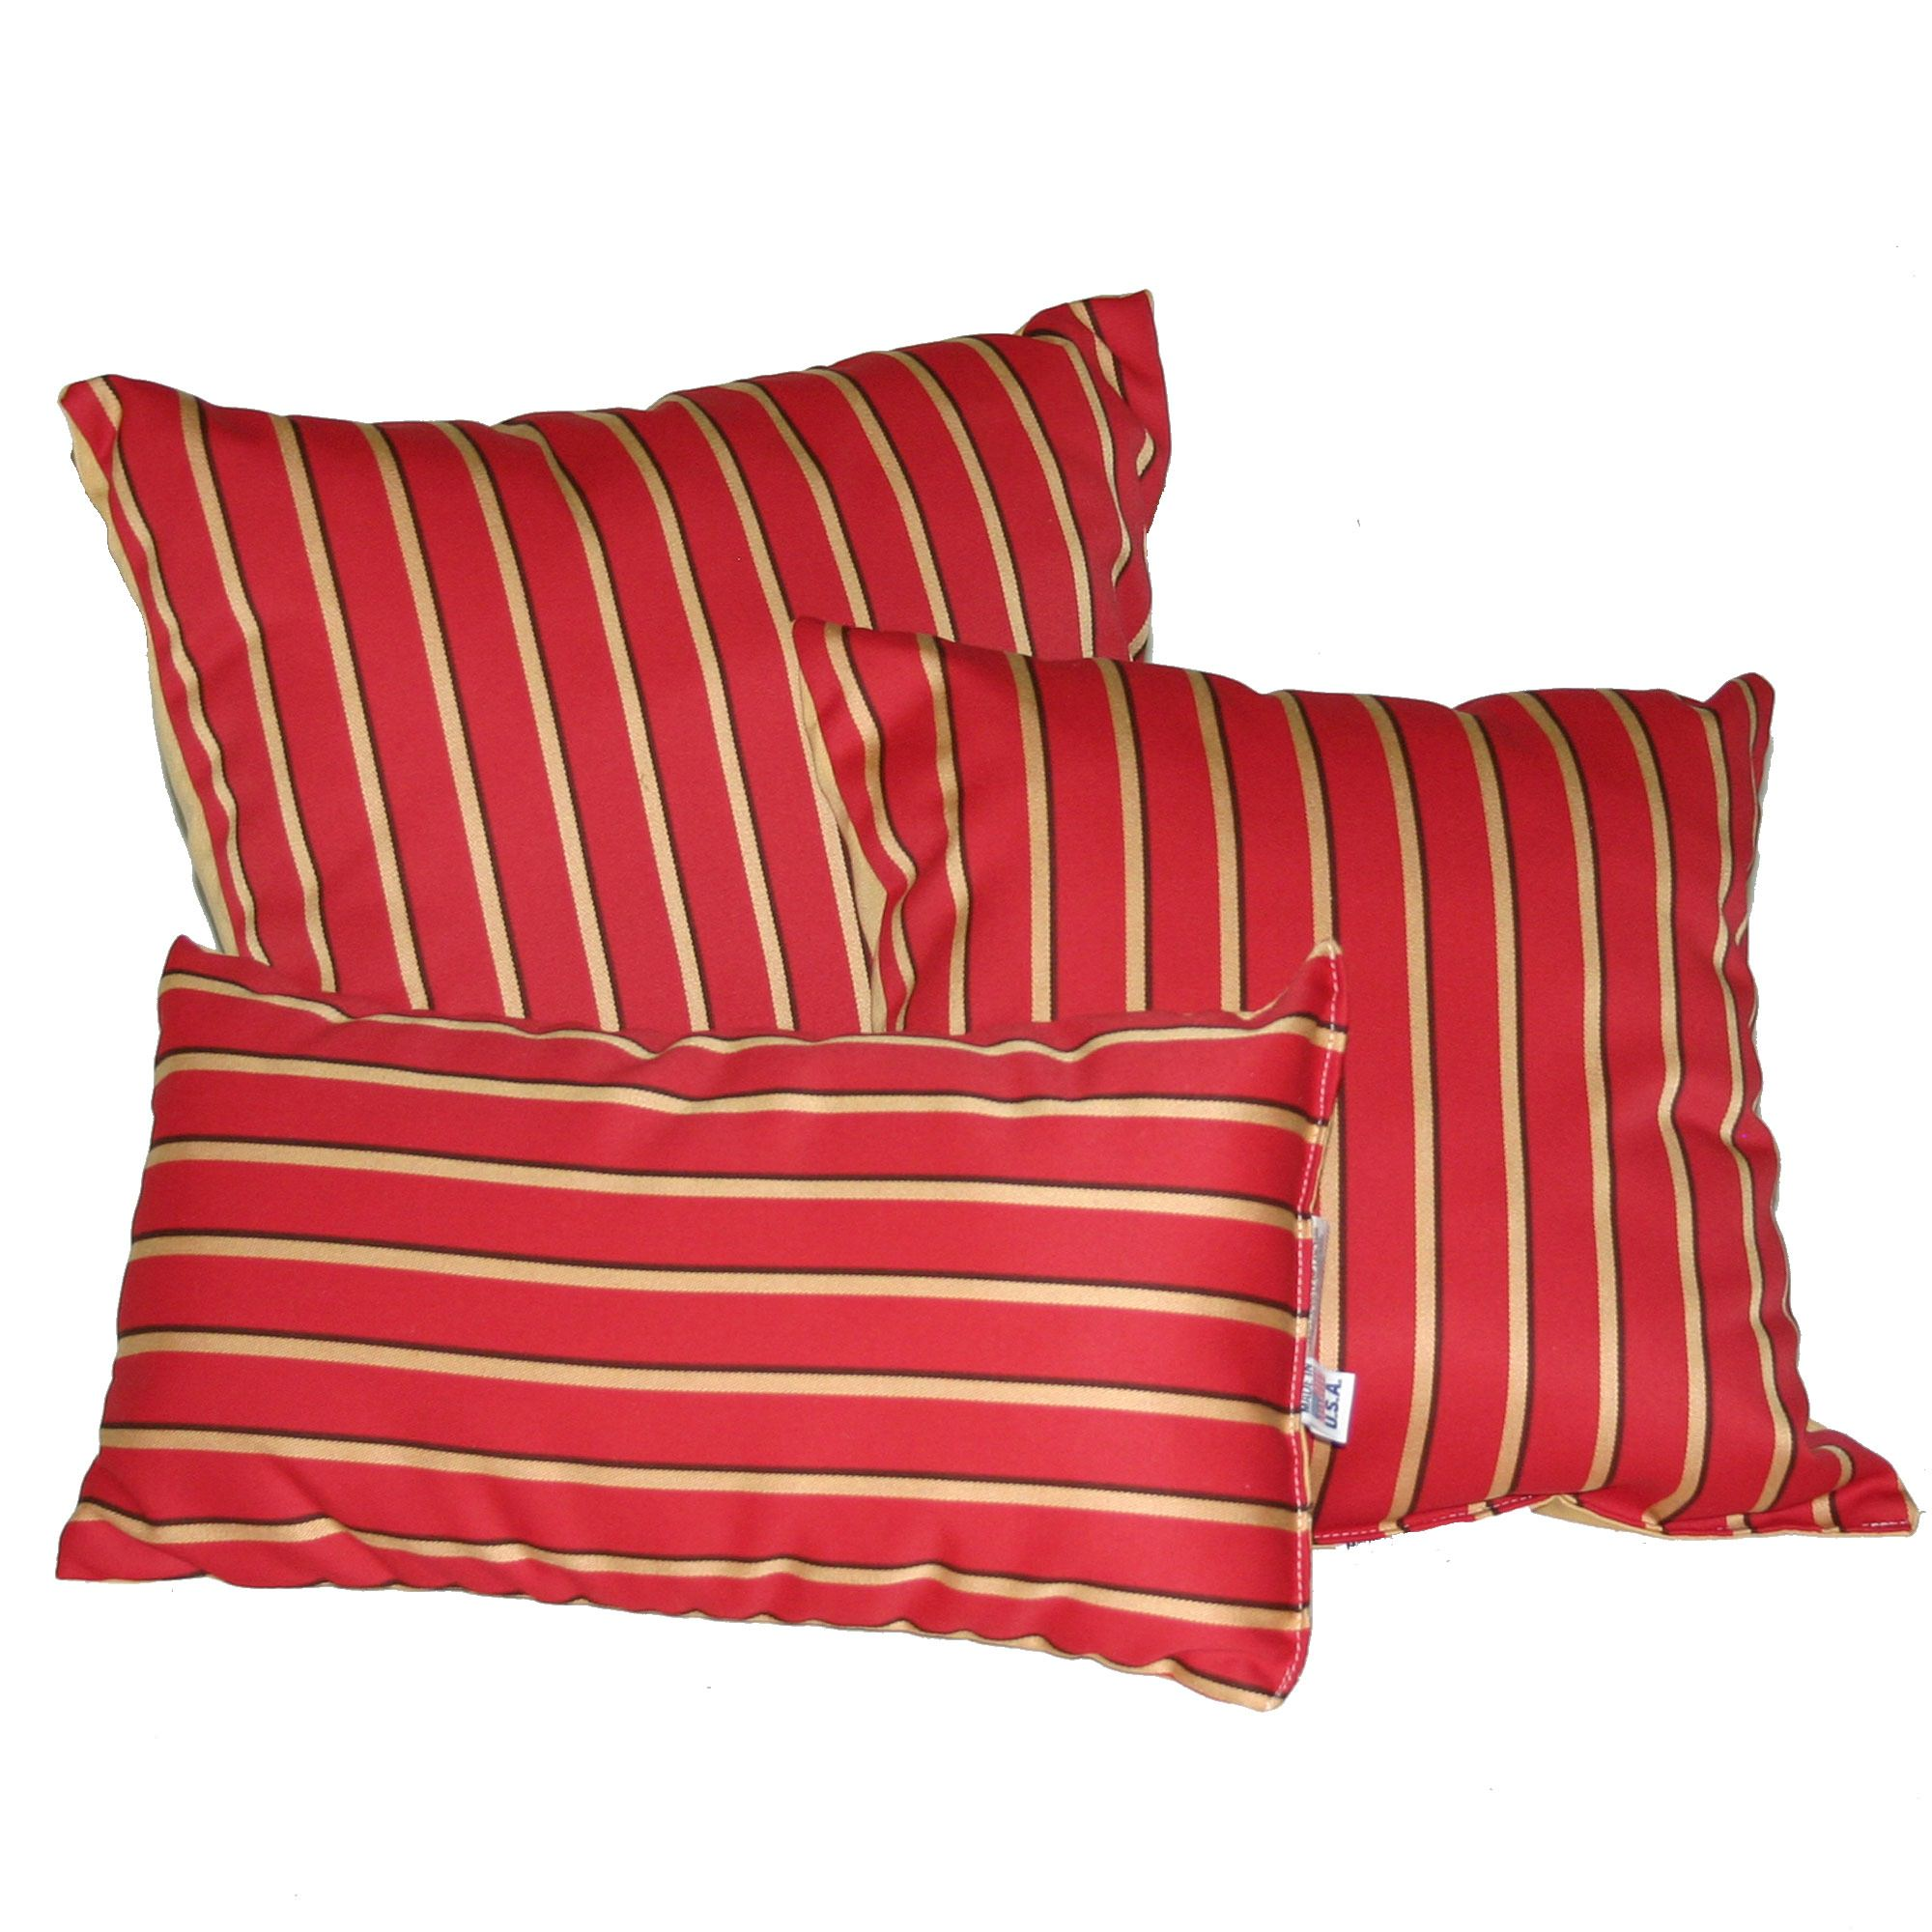 Sunbrella Throw Pillows Clearance : Sunbrella Pillows Clearance